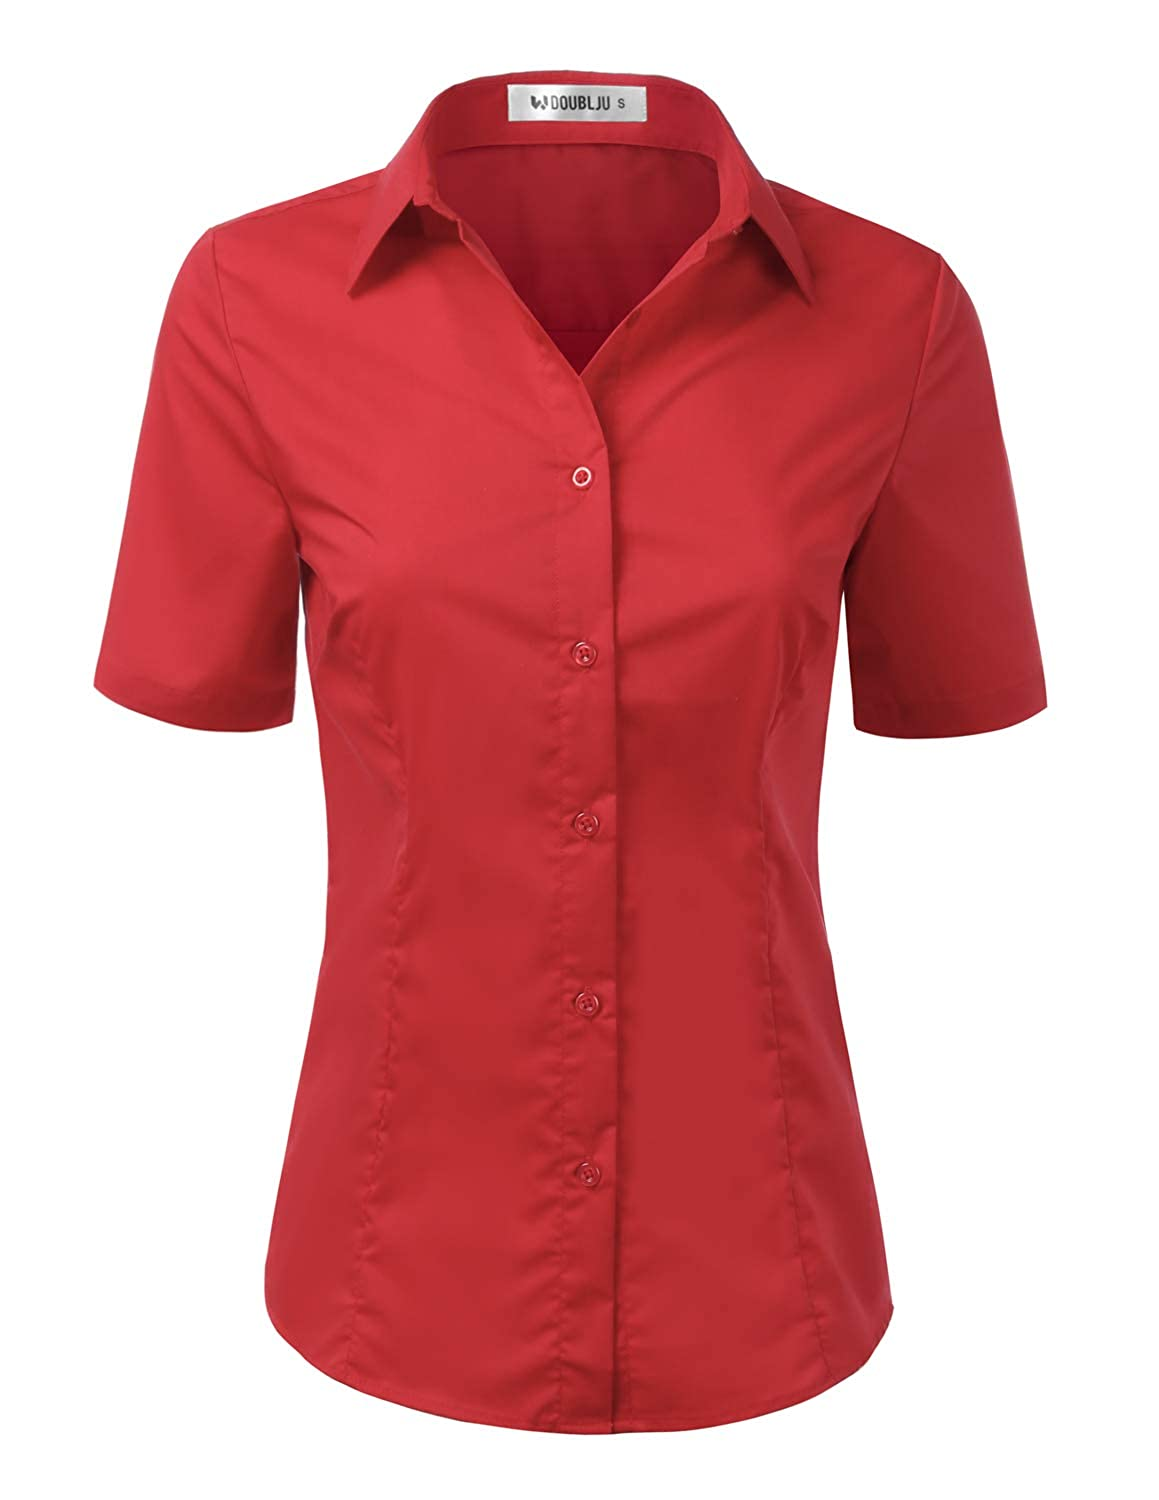 Cwtsts010_red Doublju Womens Basic Simple Short Sleeve Button Down Shirt With Plus Size